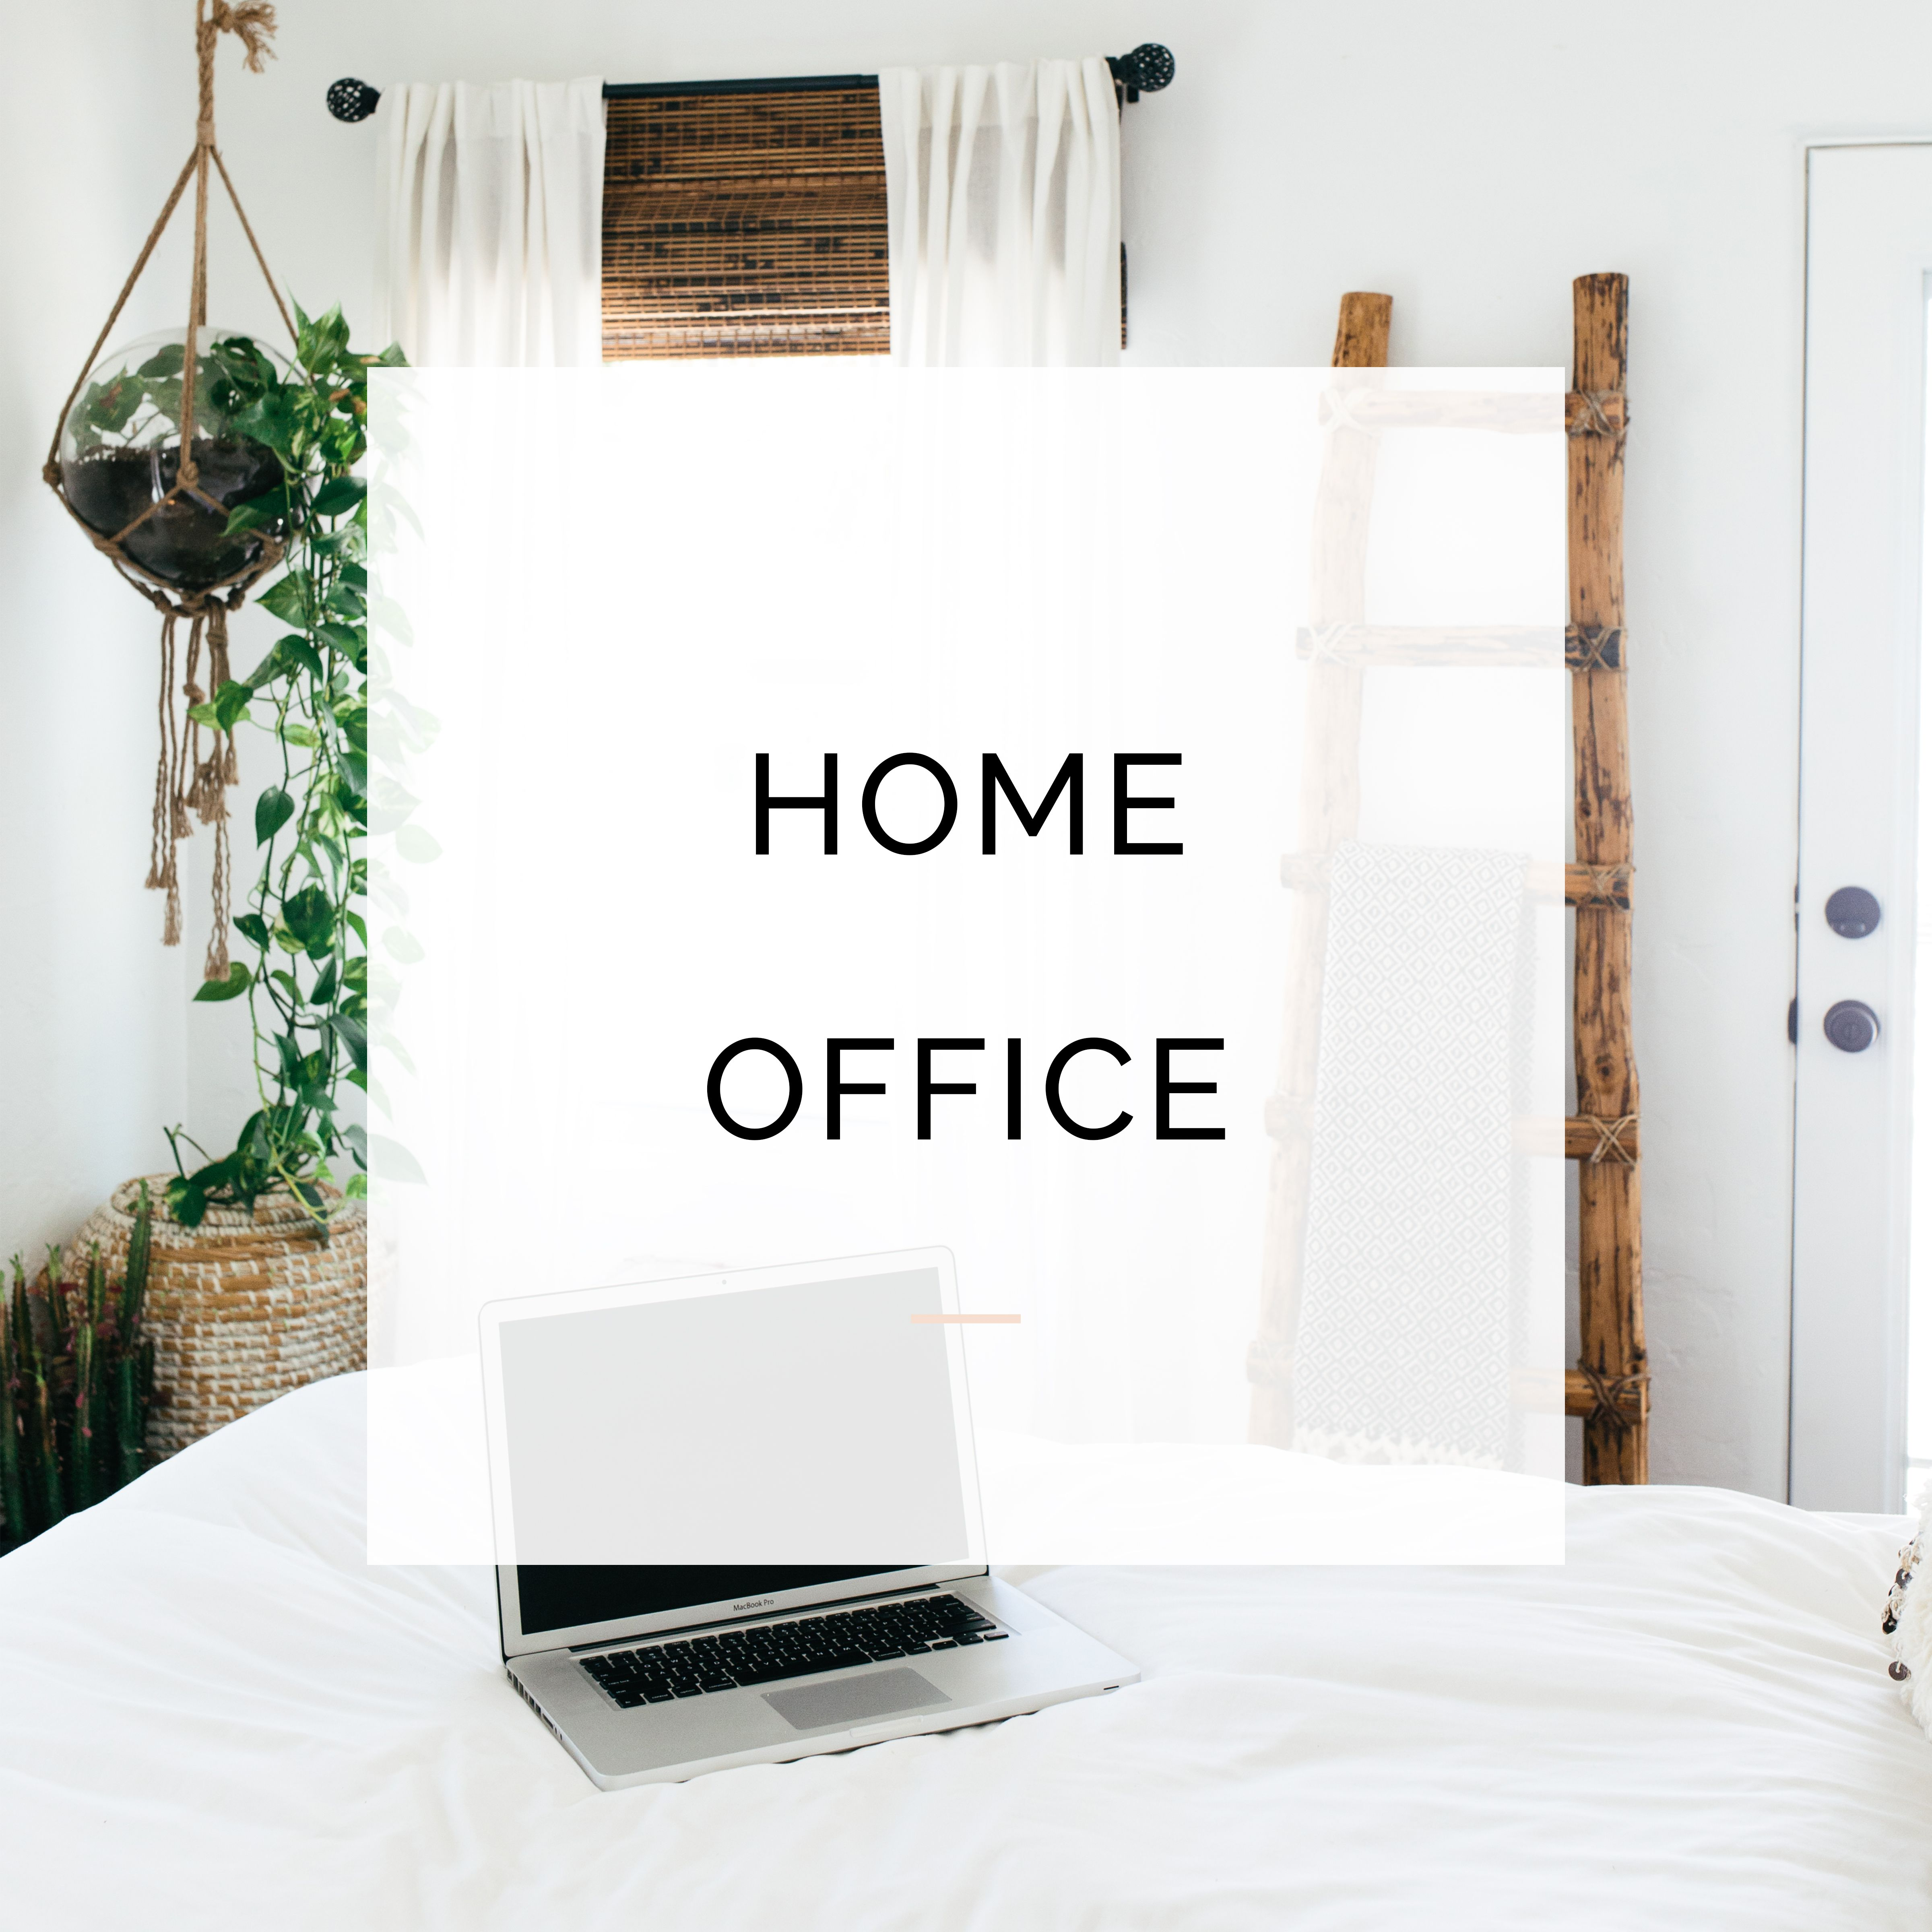 Home Office Inspiration For Online Businesses Owners. // Interior Design,  Home Decor,